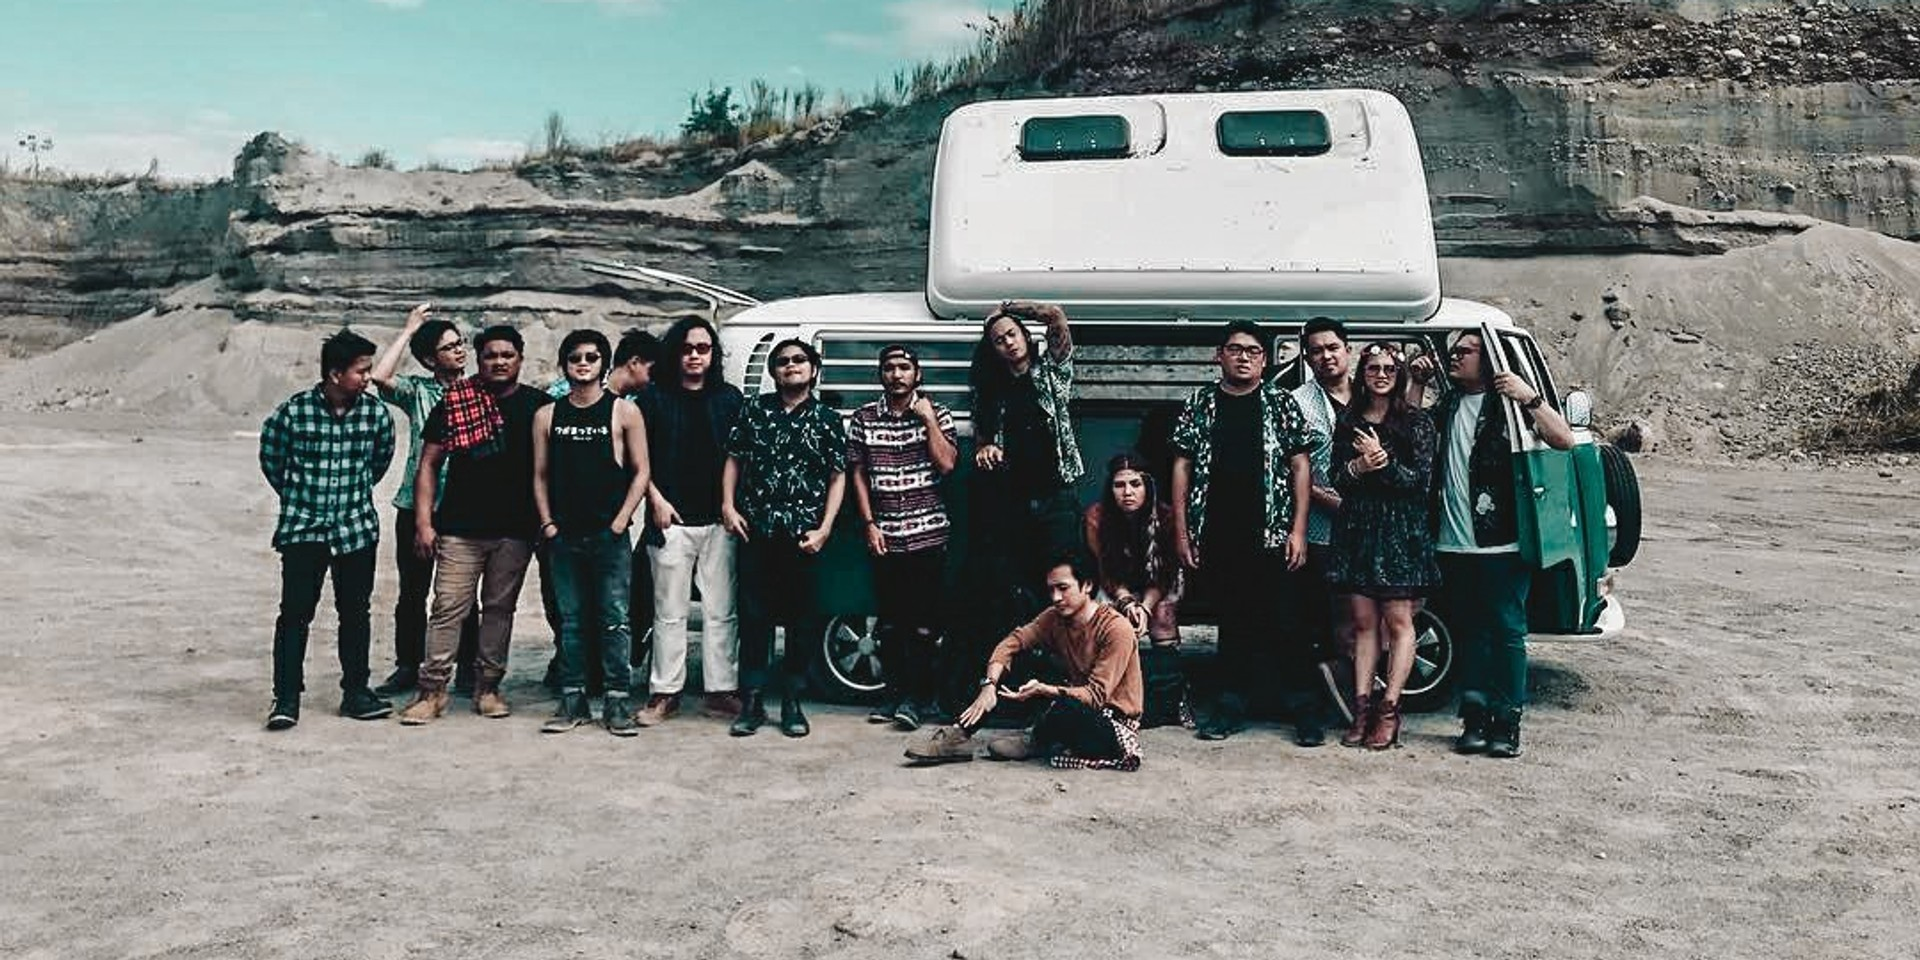 December Avenue, Gracenote, Autotelic collab 'Summer Song' is now on Spotify